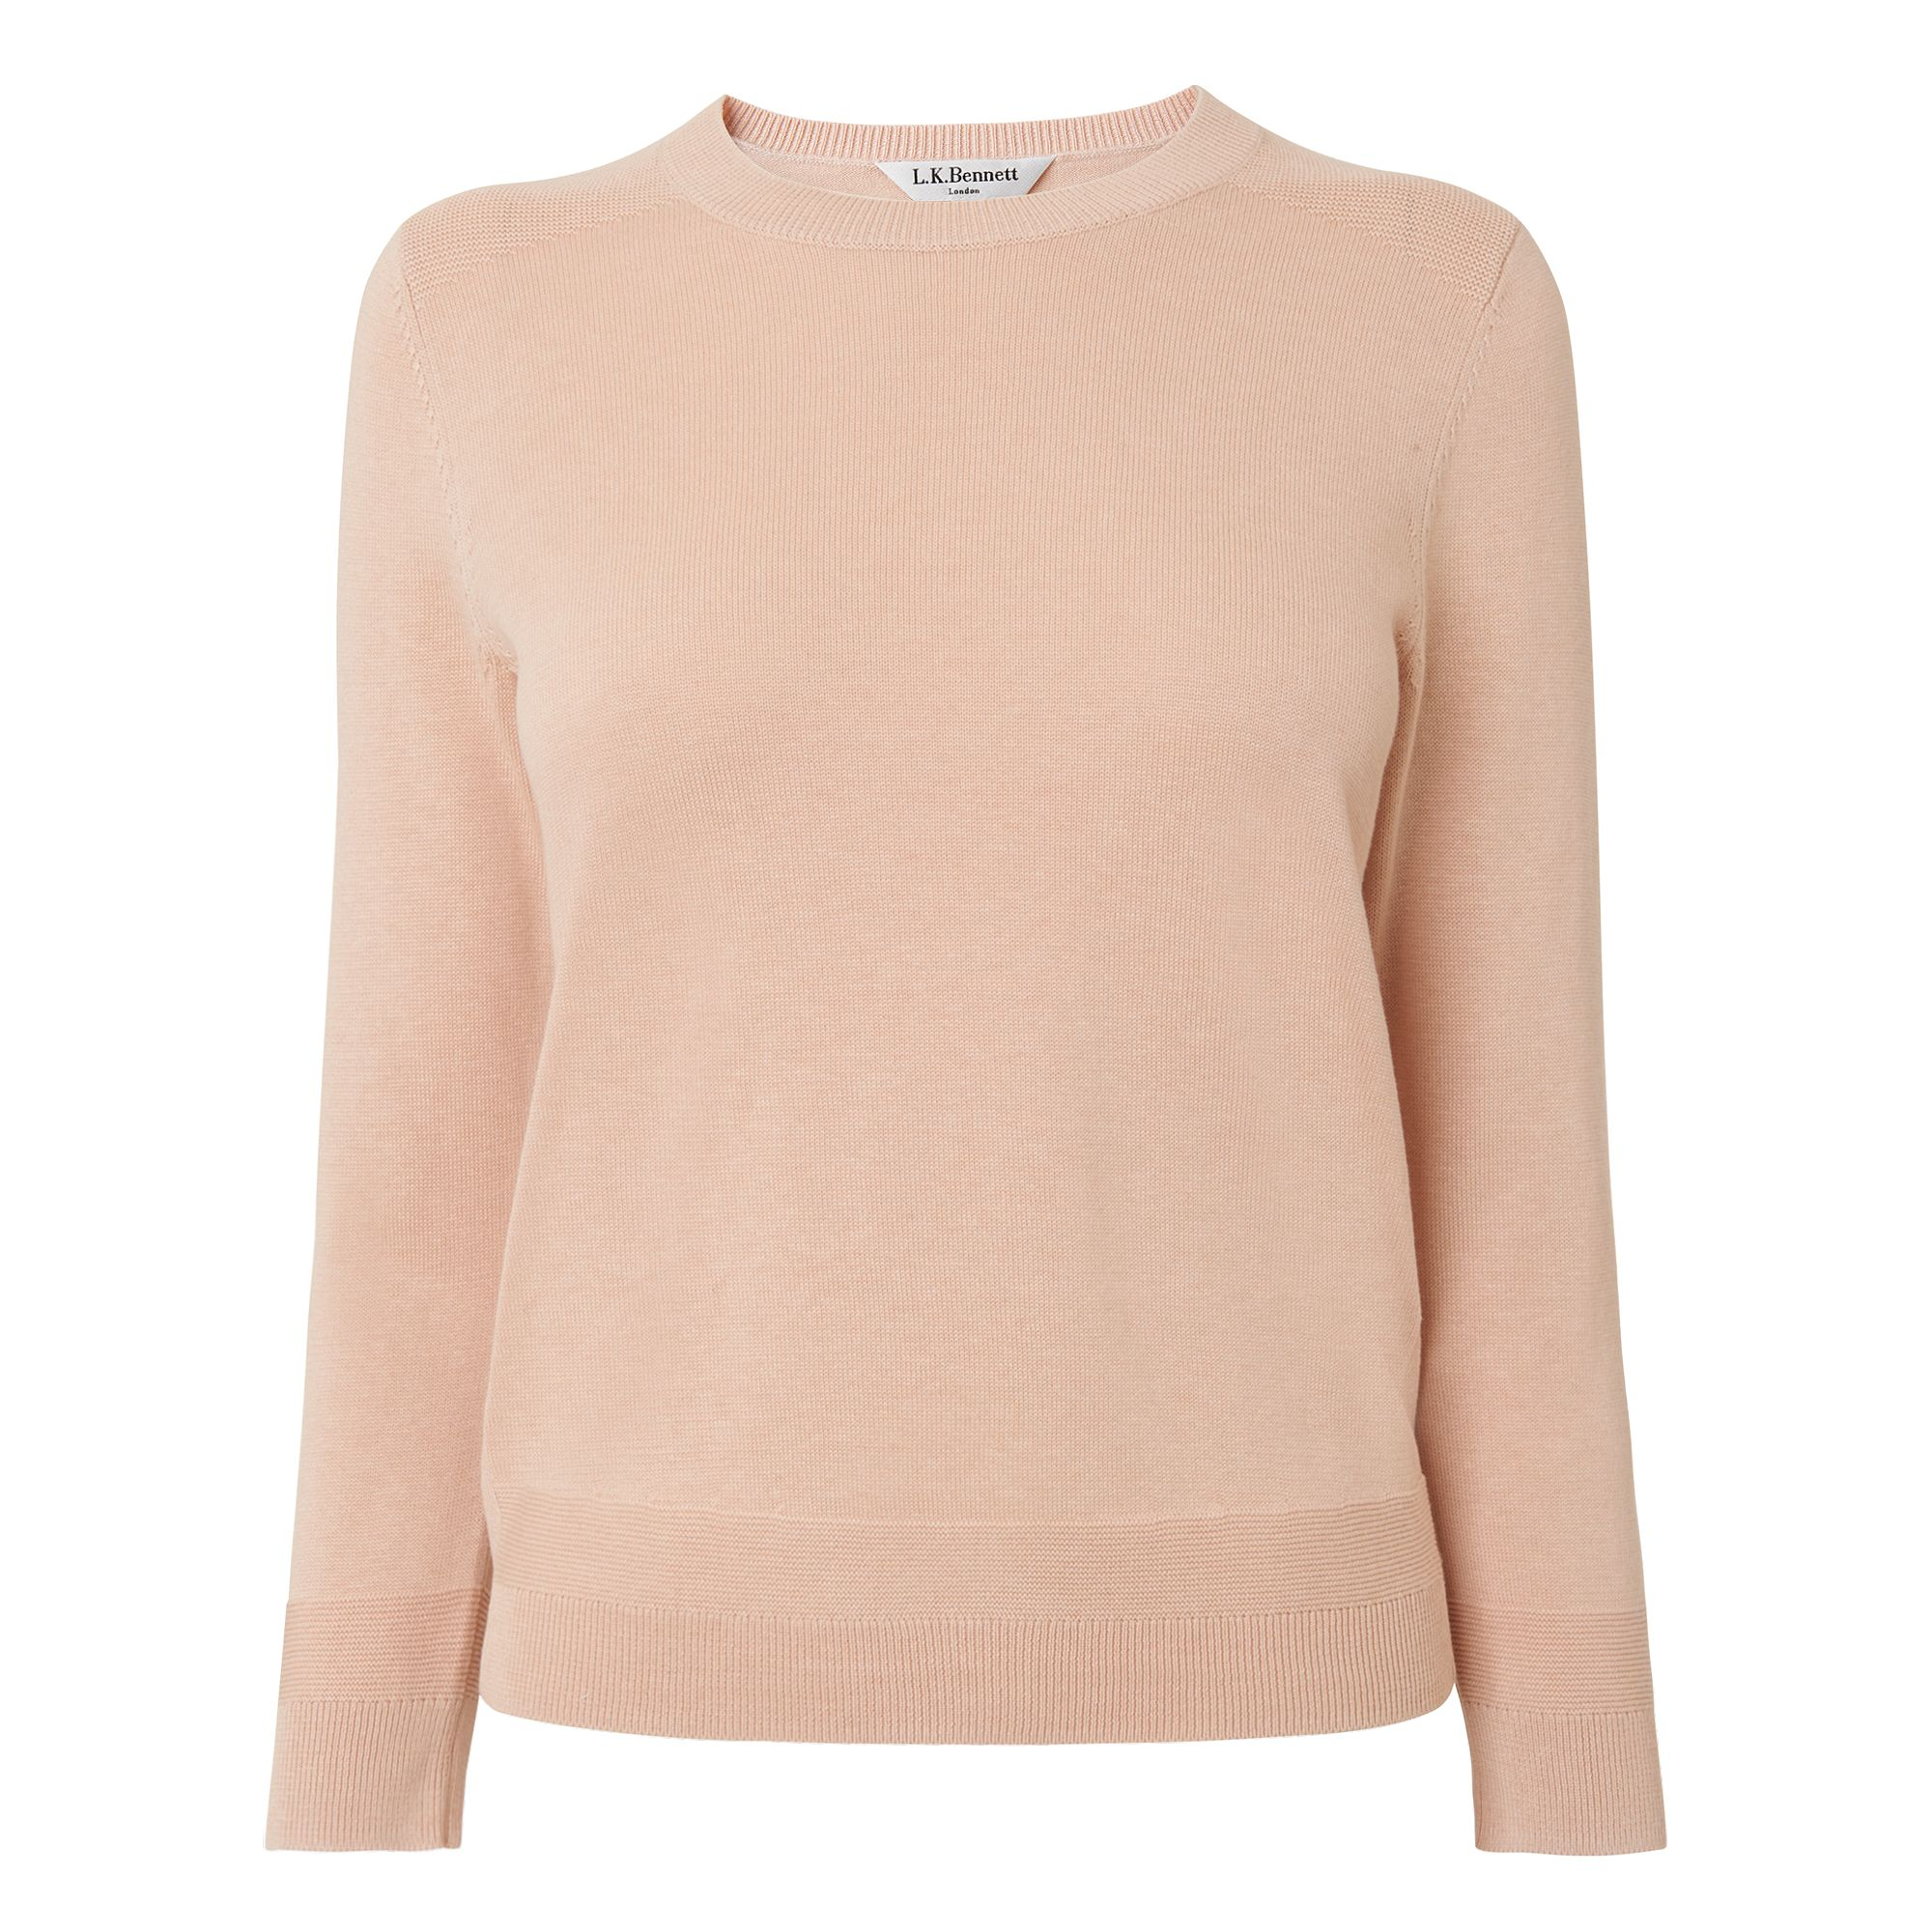 L.K. Bennett Maisy Silk Cotton Knitted Tops, Pink